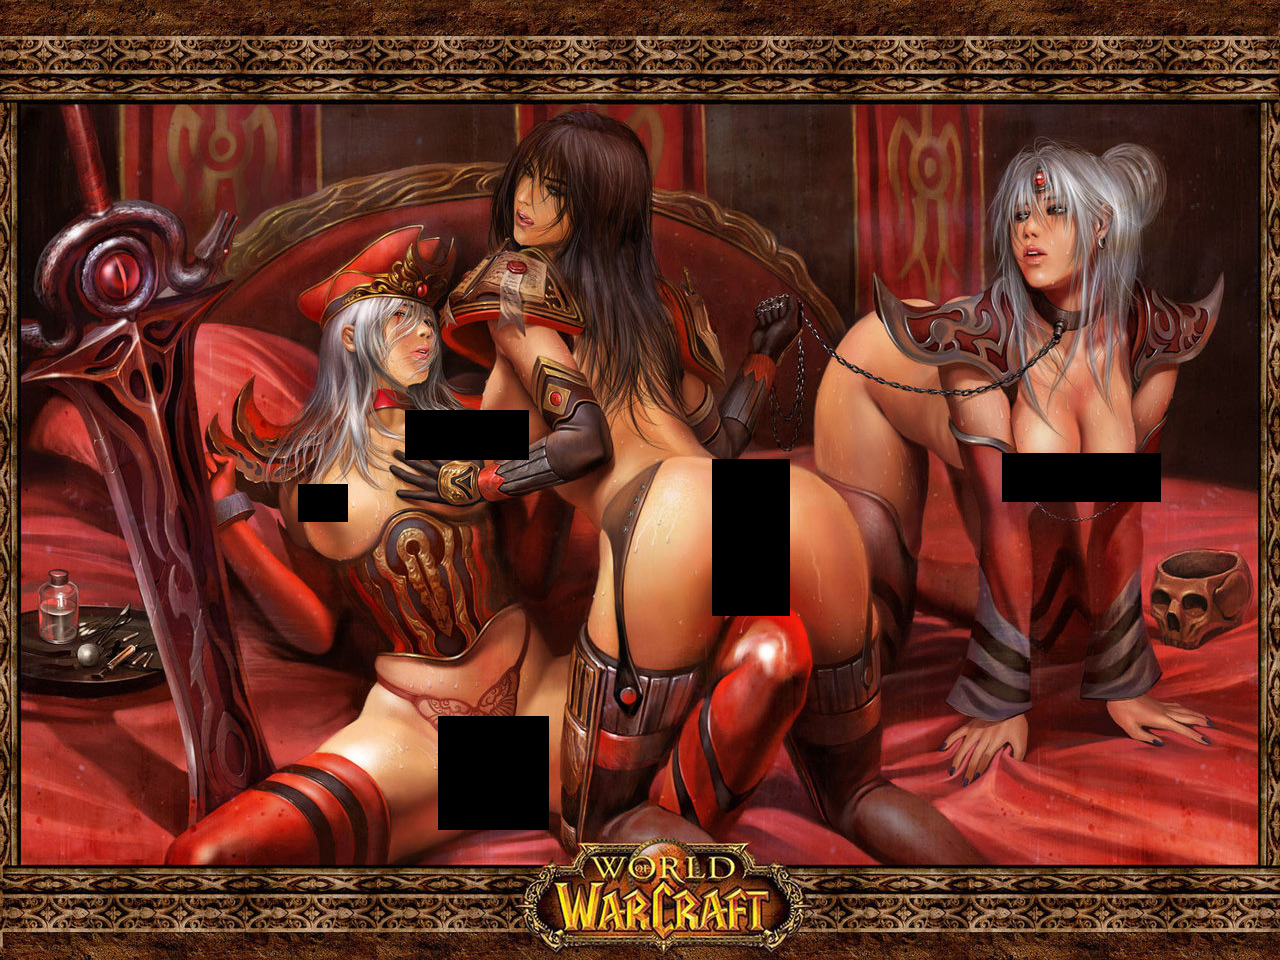 Of porn world warcraft